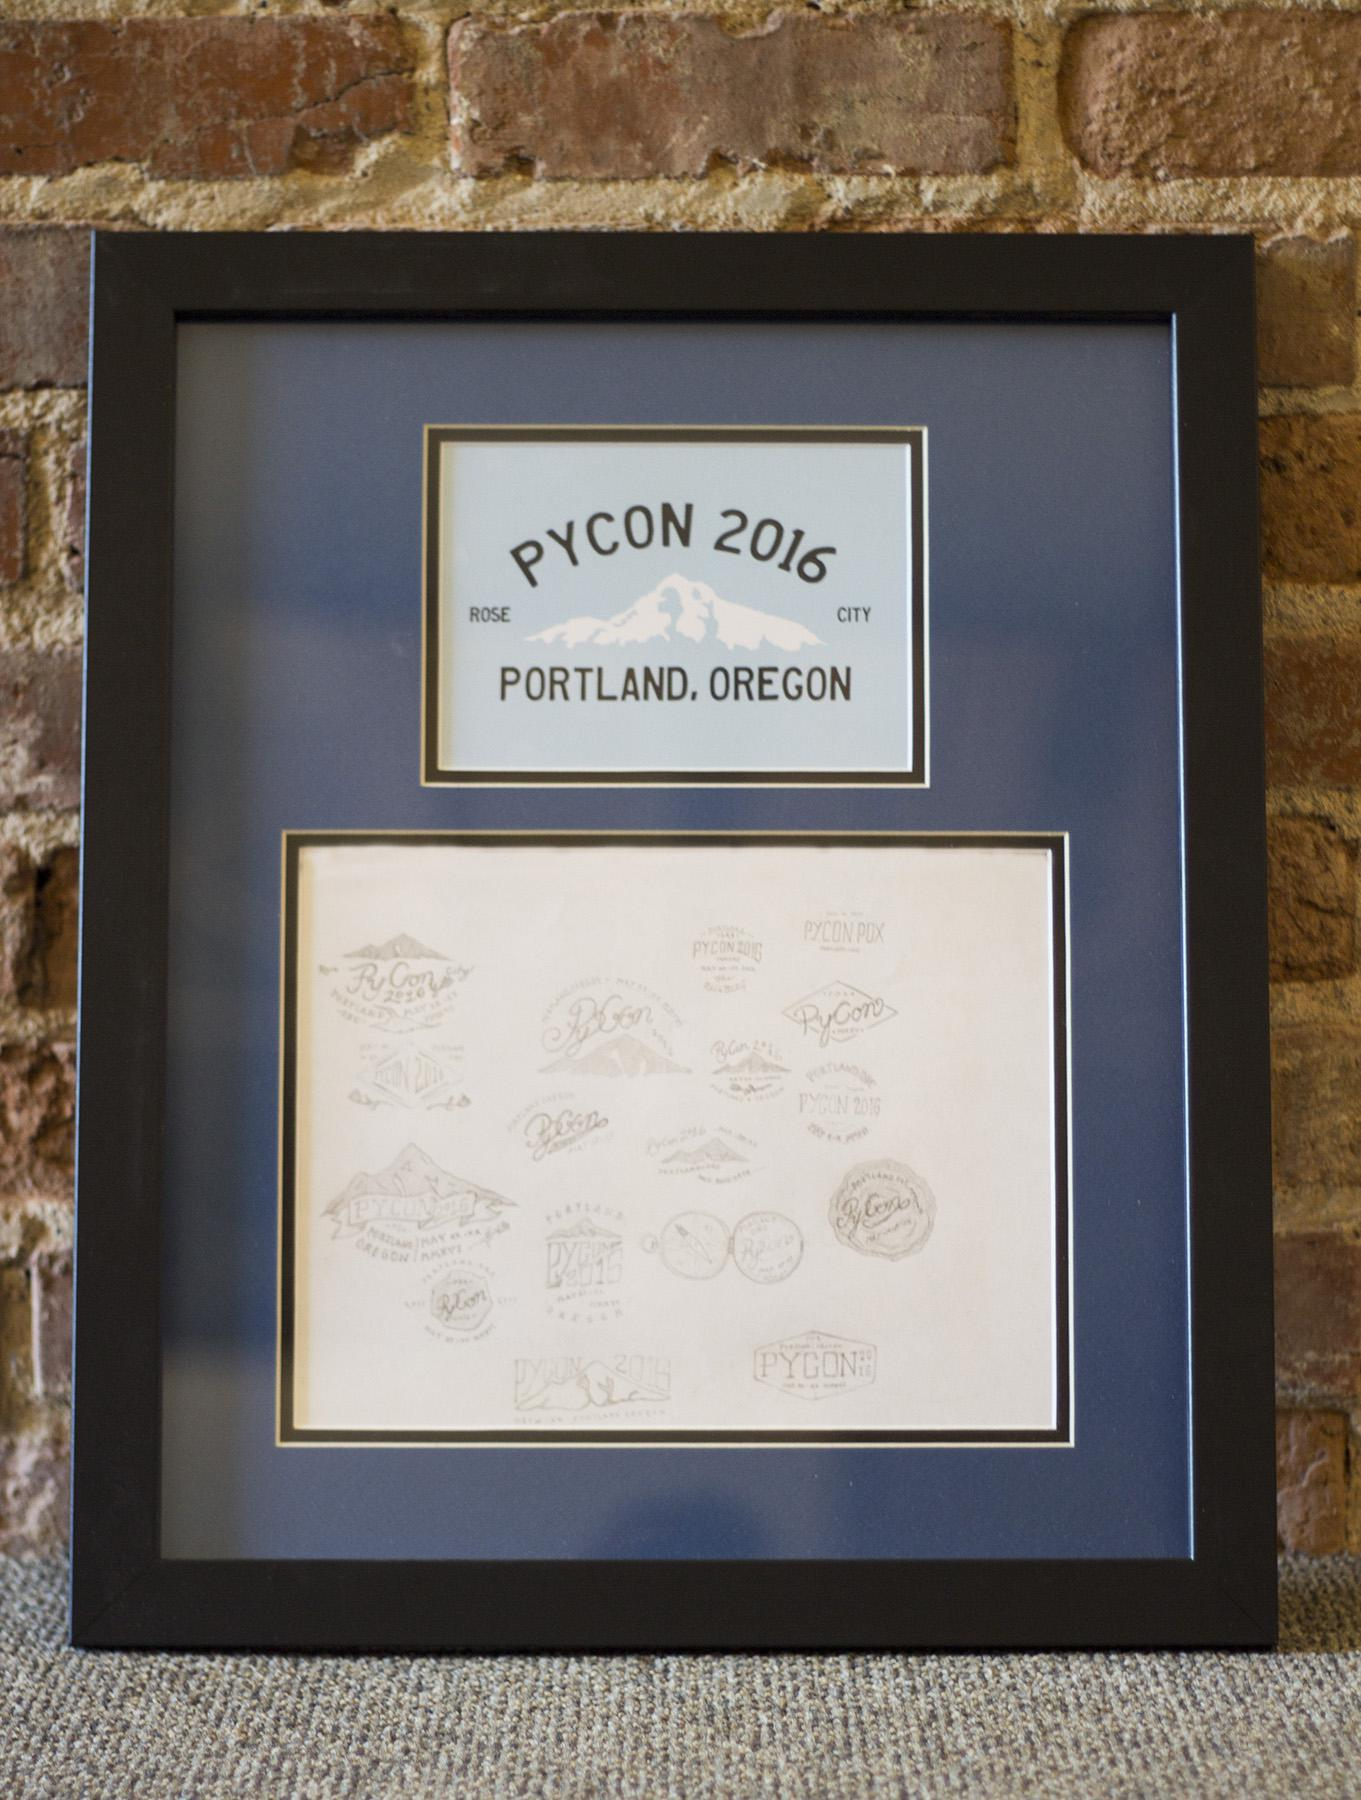 early designs for PyCon 2016